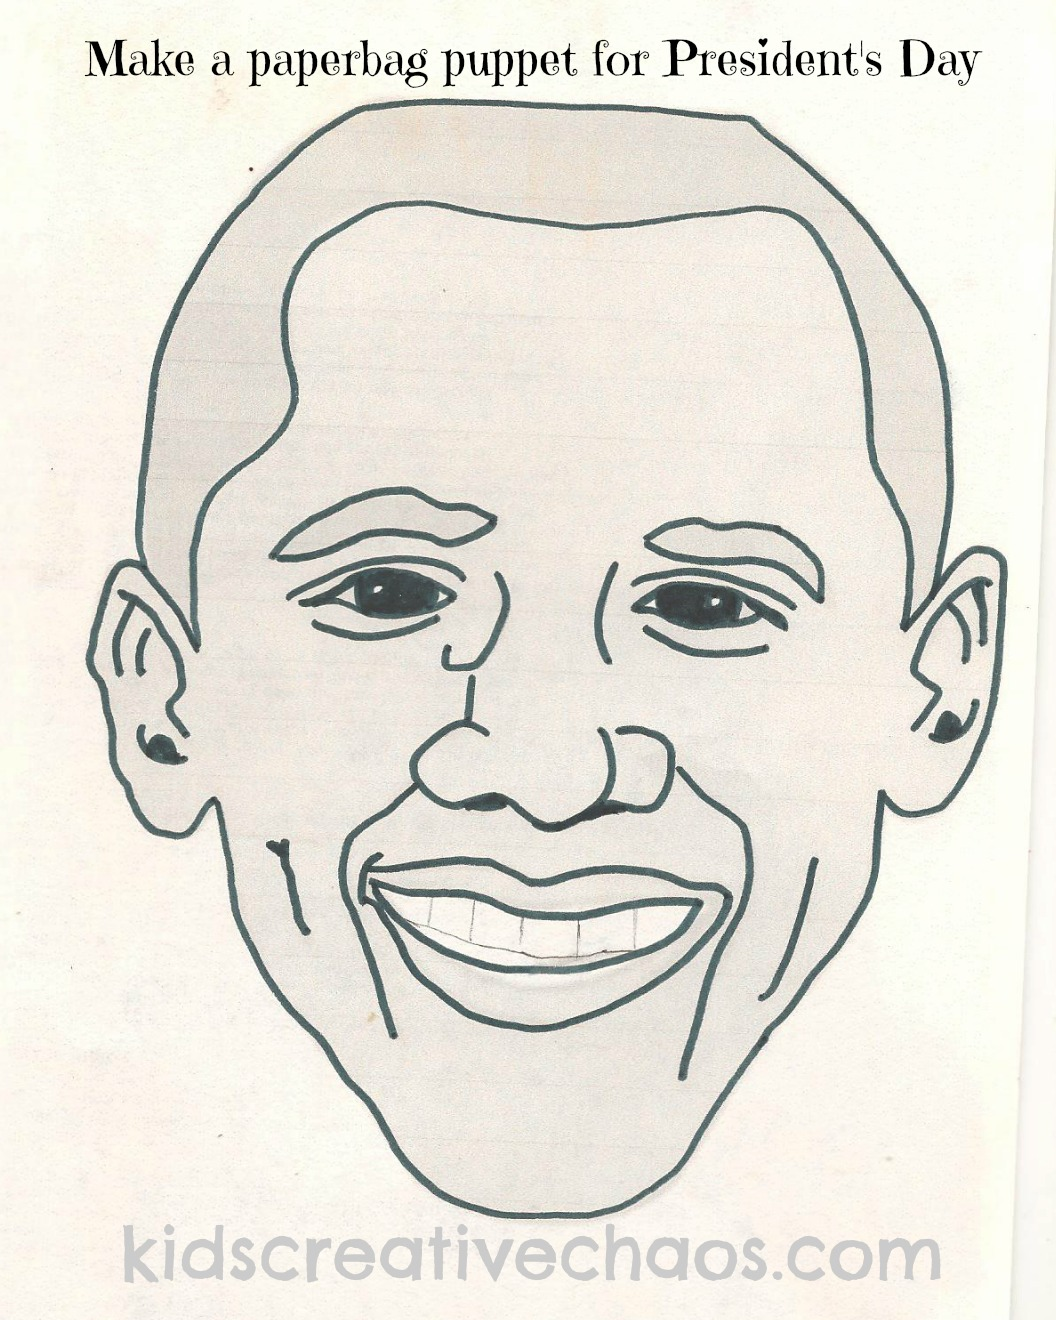 Barack Obama Paper Bag Puppet: Hey When is President\'s Day Anyway ...